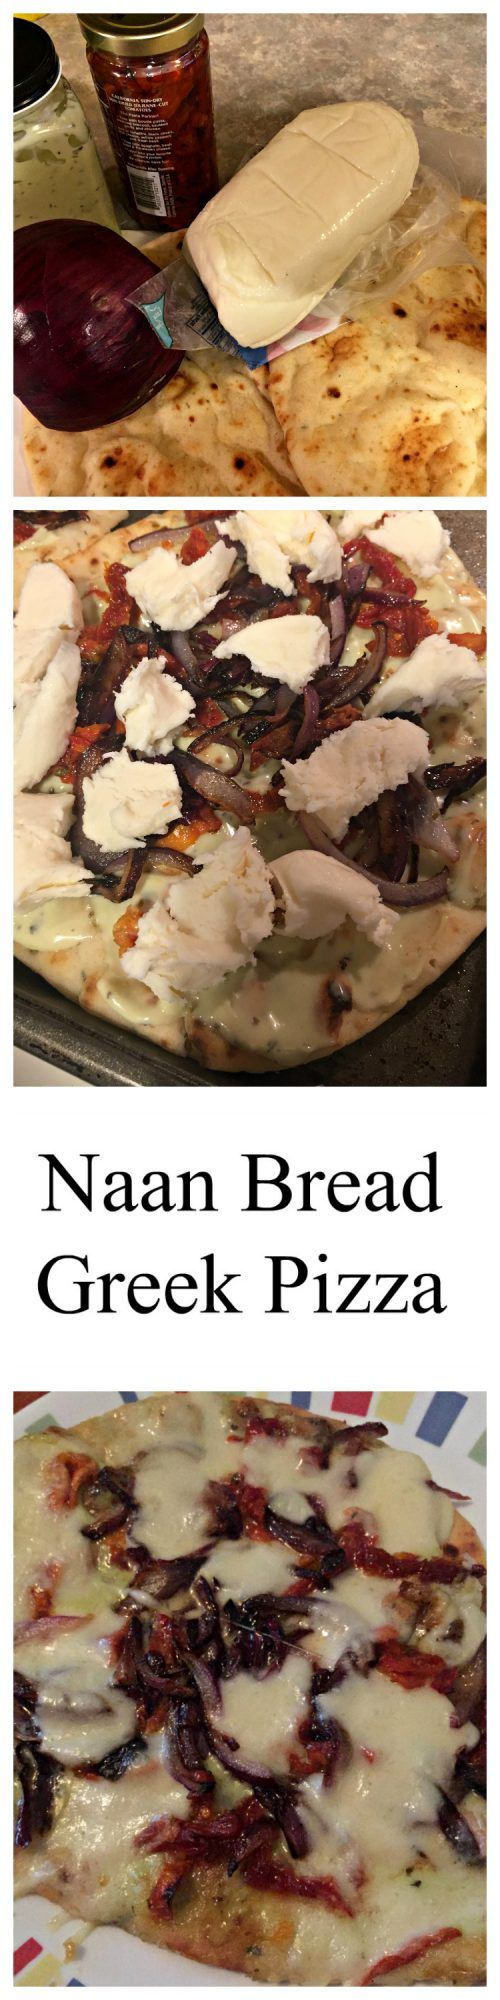 Naan Bread Greek Pizza is great for Race Day or any time you need an easy and delicious quick meal or snack.